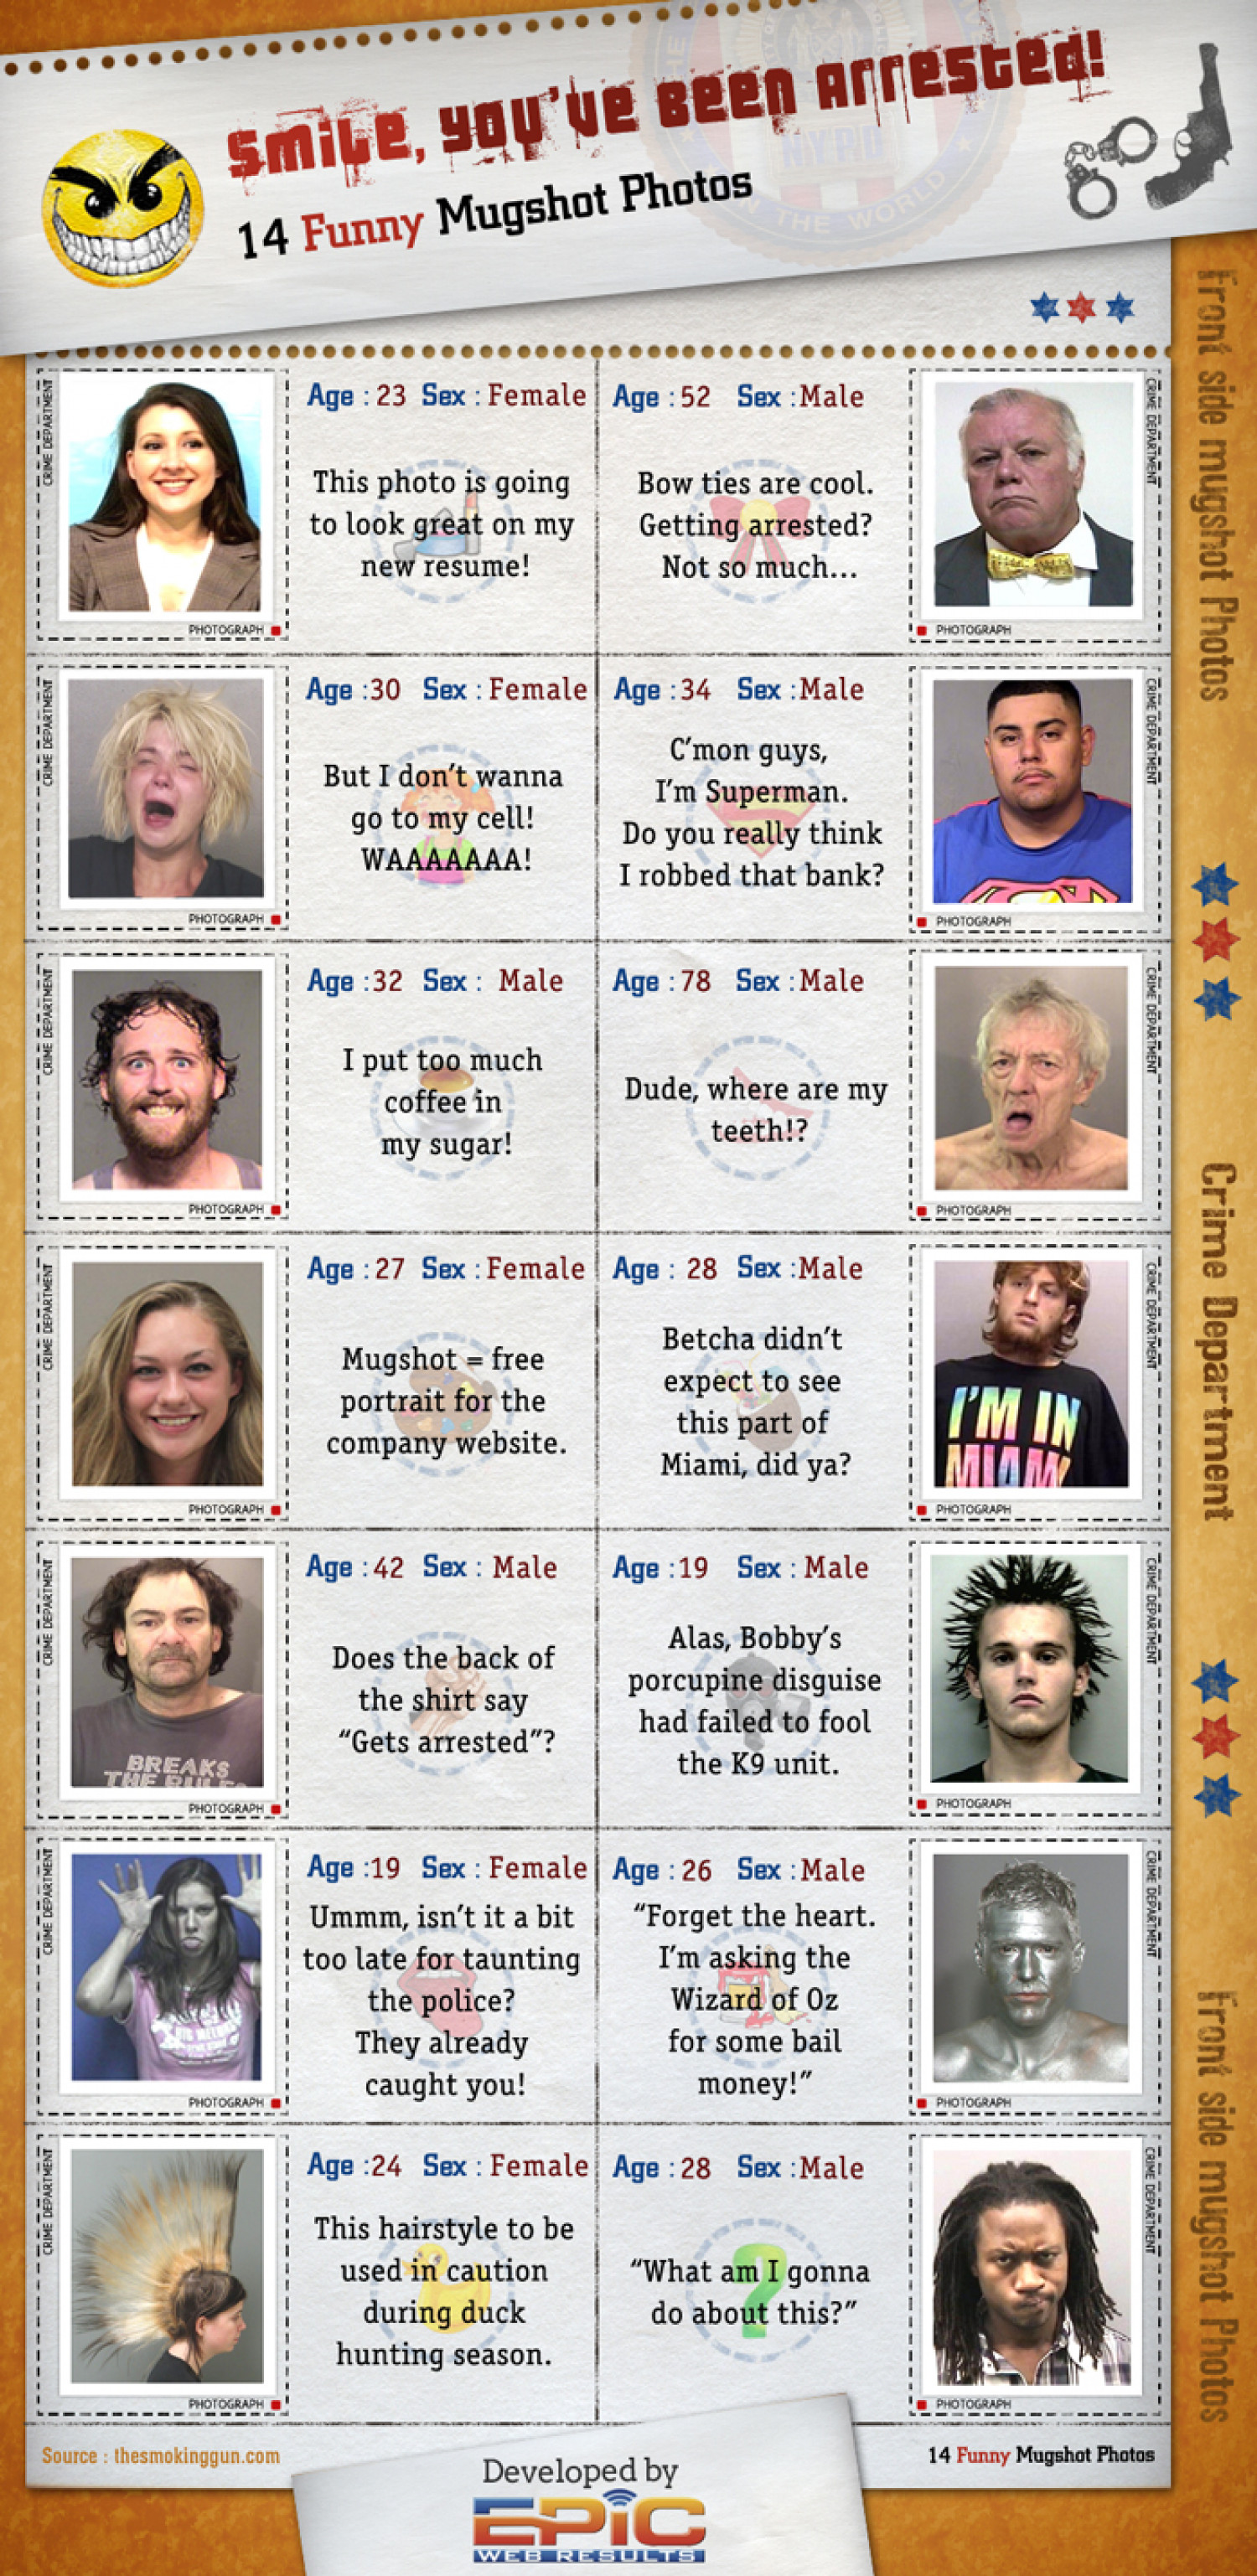 Smile! You've Been Arrested: 14 Funny Mugshot Photos [Infographic] Infographic